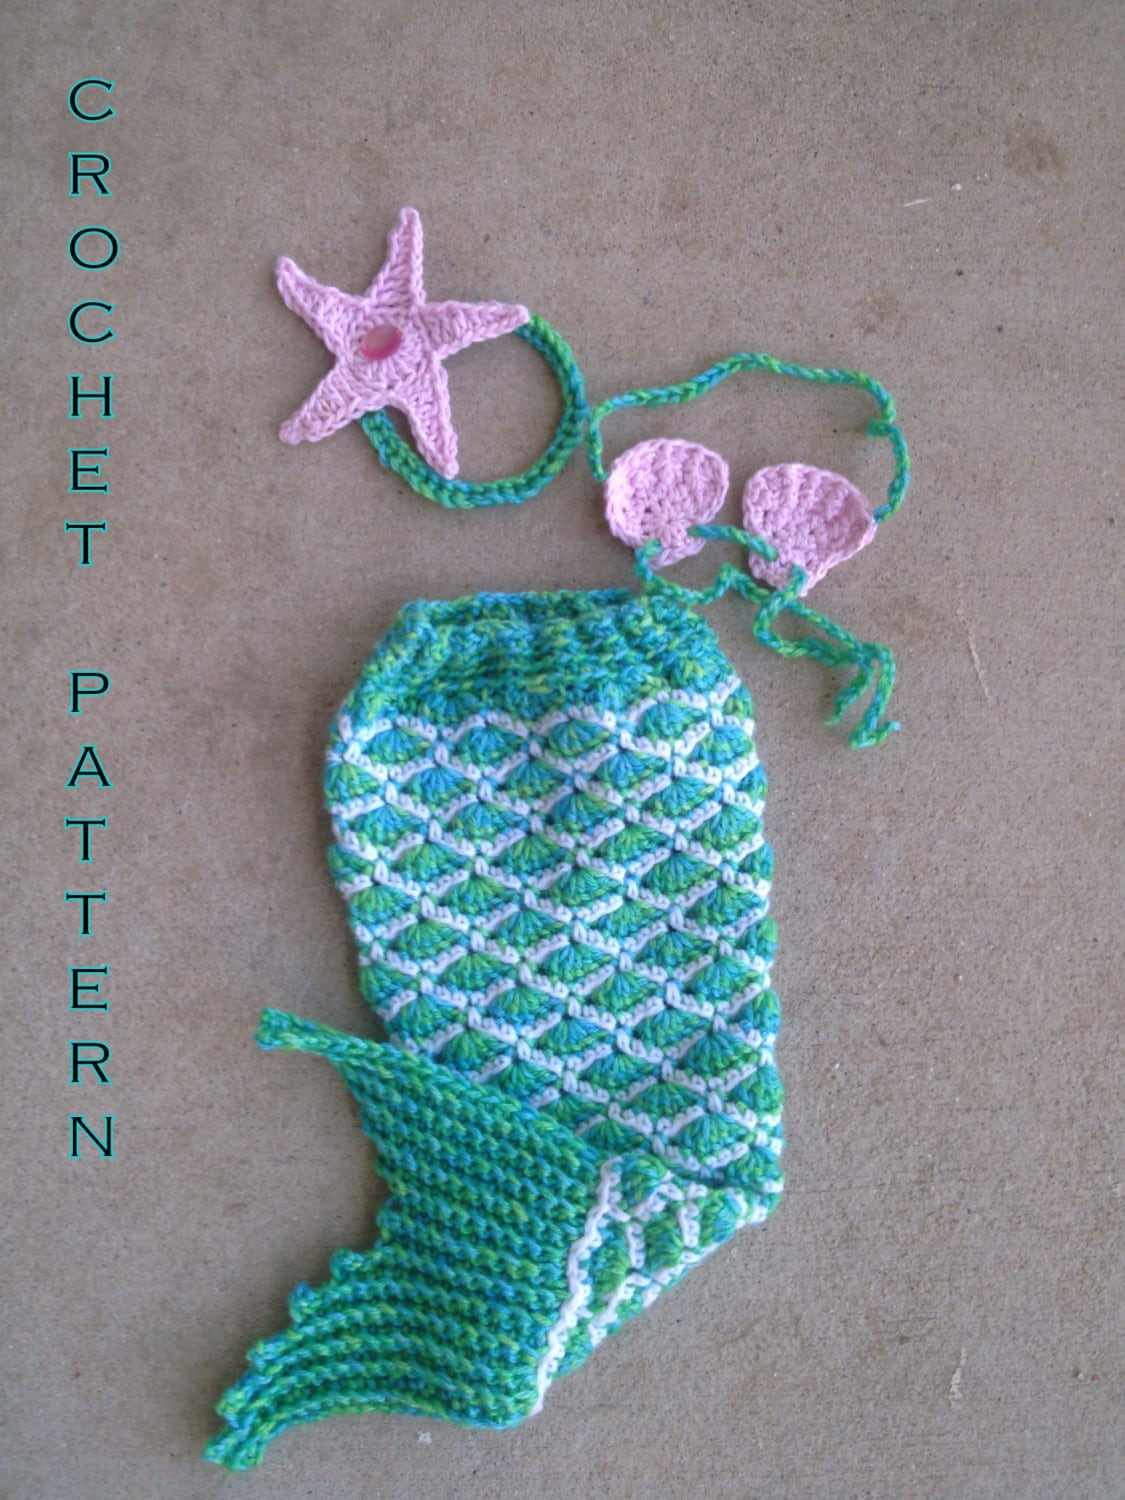 Crochet Baby Outfit Pattern : Crochet Pattern PDF Baby Mermaid Outfit Newborn Photo Prop